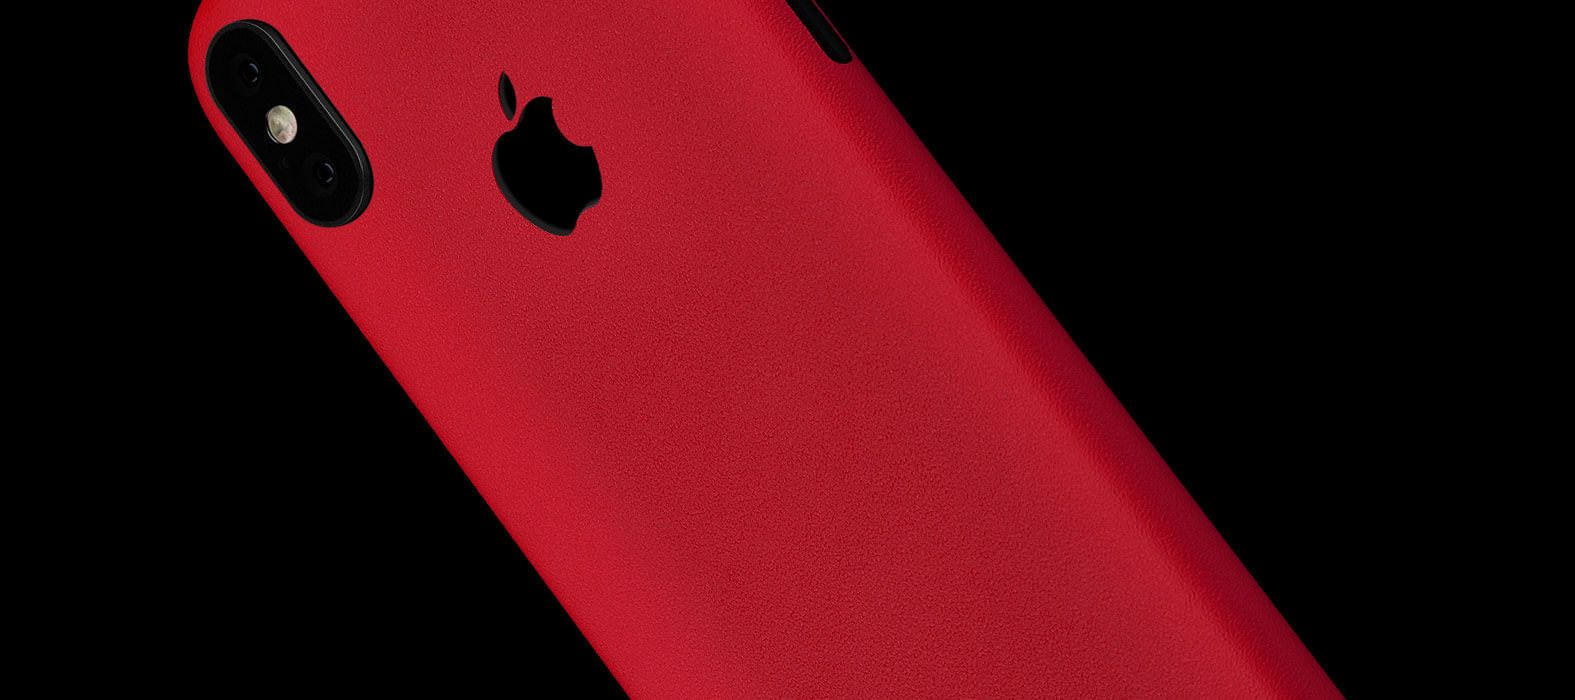 Sandstone Red iPhone X Skins, Wraps & decals